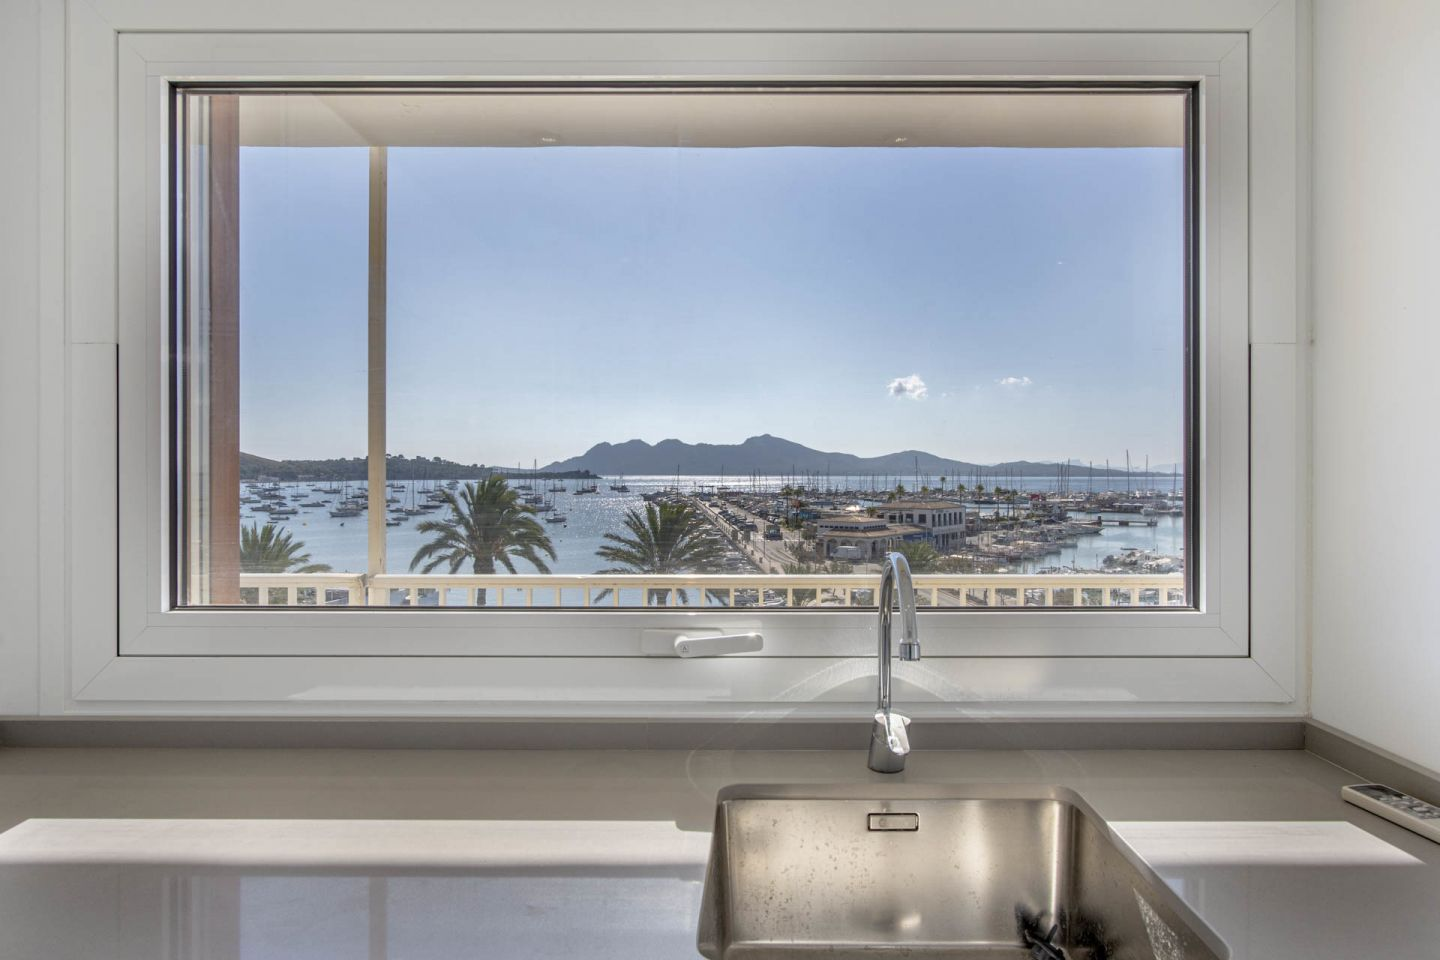 4 Bed Apartment for sale in PUERTO POLLENSA 6